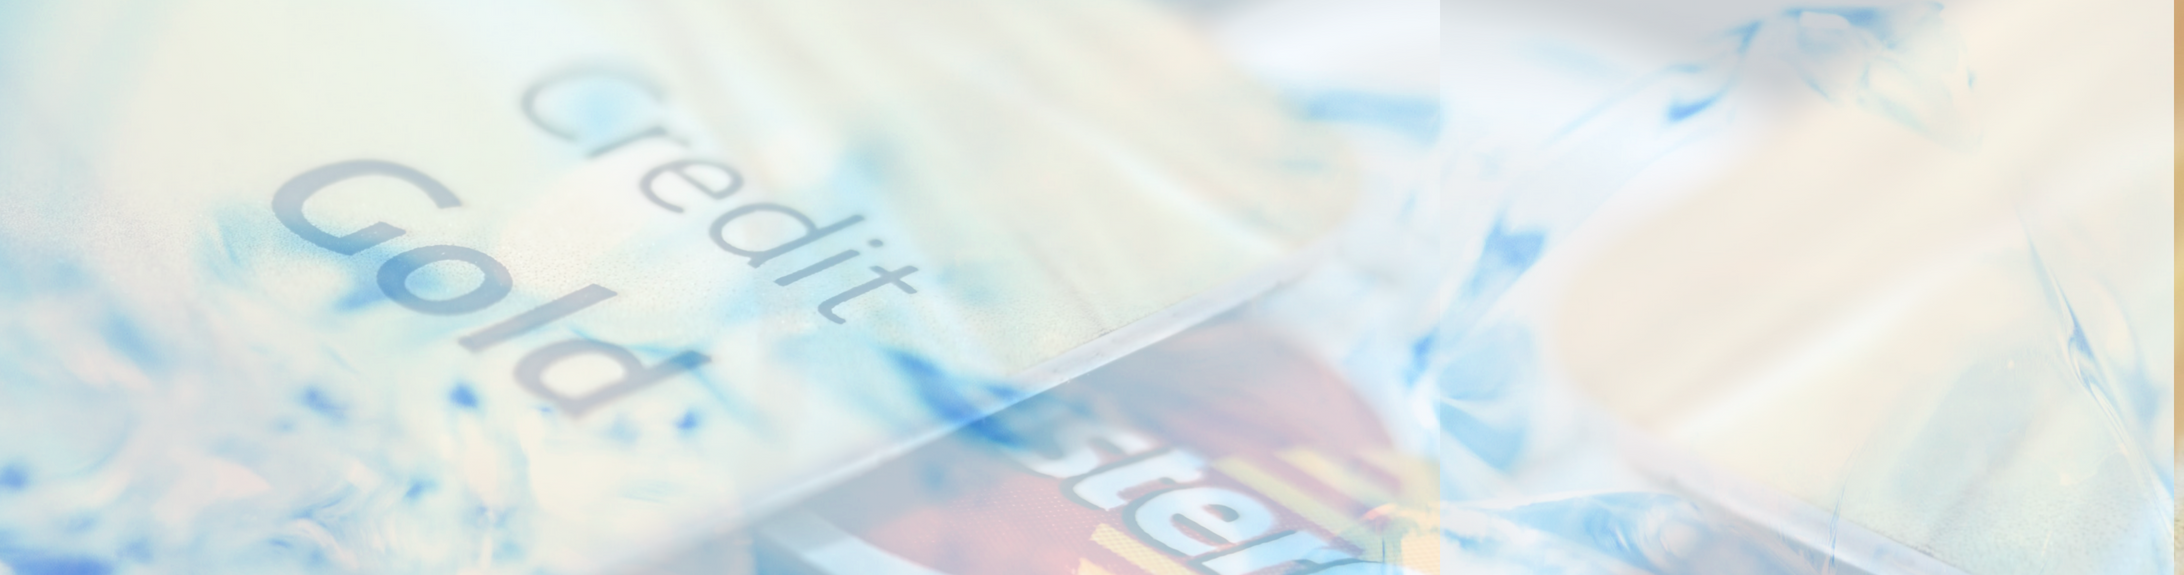 Image of Credit Cards & Ice